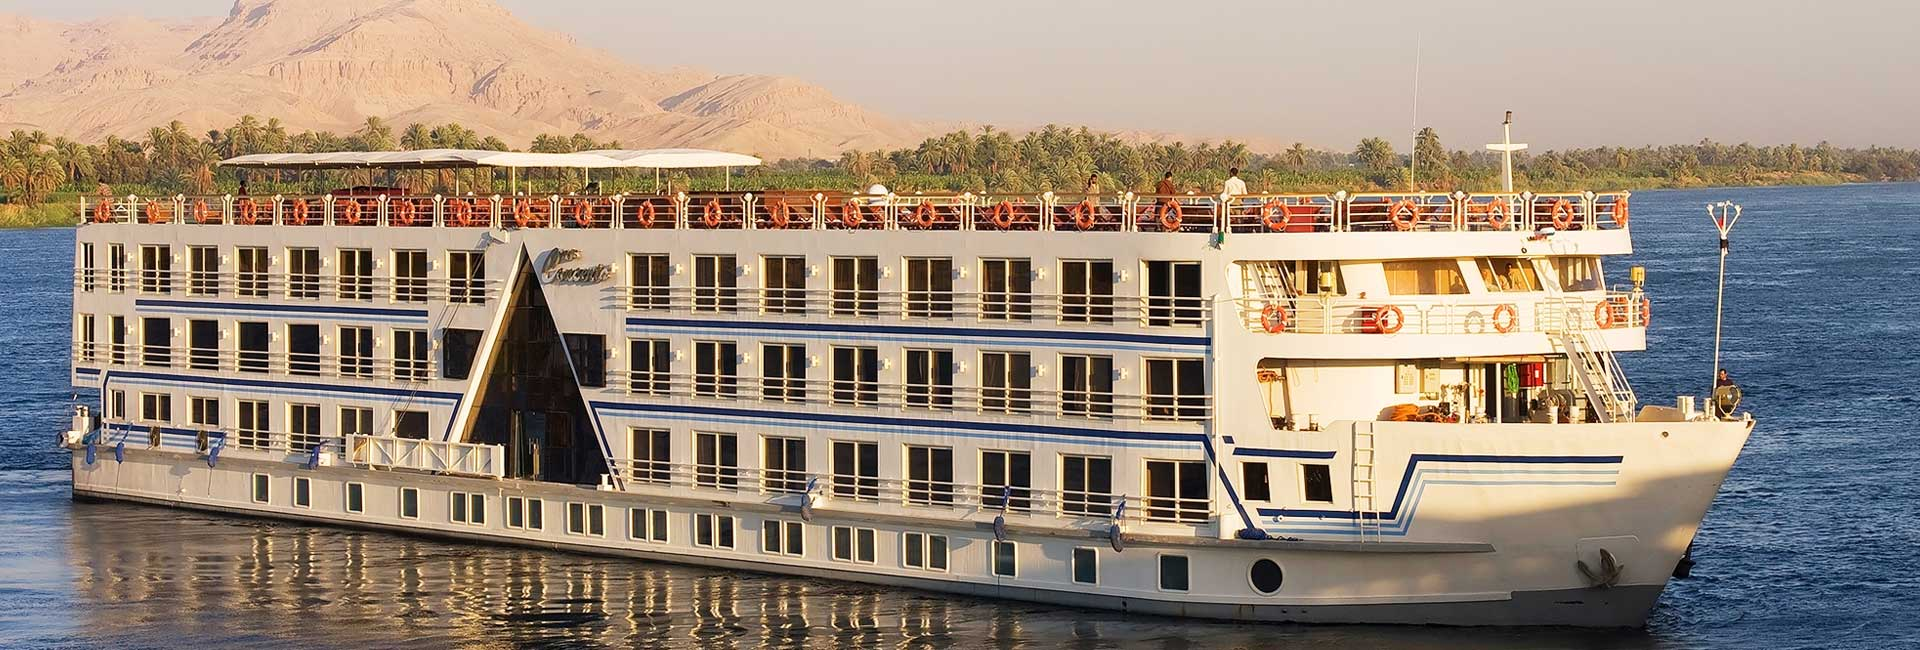 Cairo Cruises & Water Tours